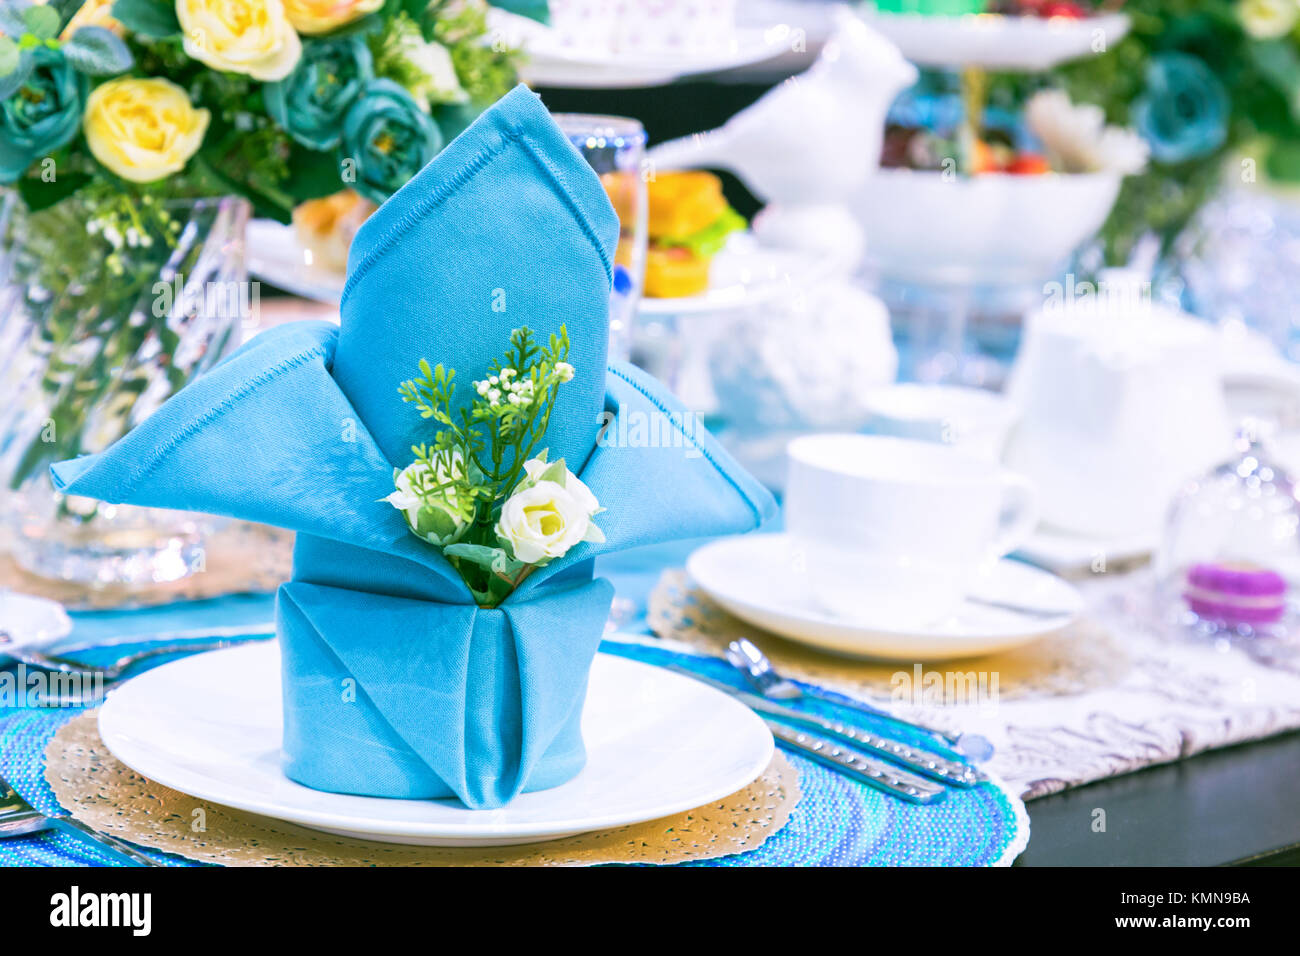 party table setting with a blue napkin flower white plate and white teacup in the celebration day. decoration dinner table served in blue tone color & party table setting with a blue napkin flower white plate and ...